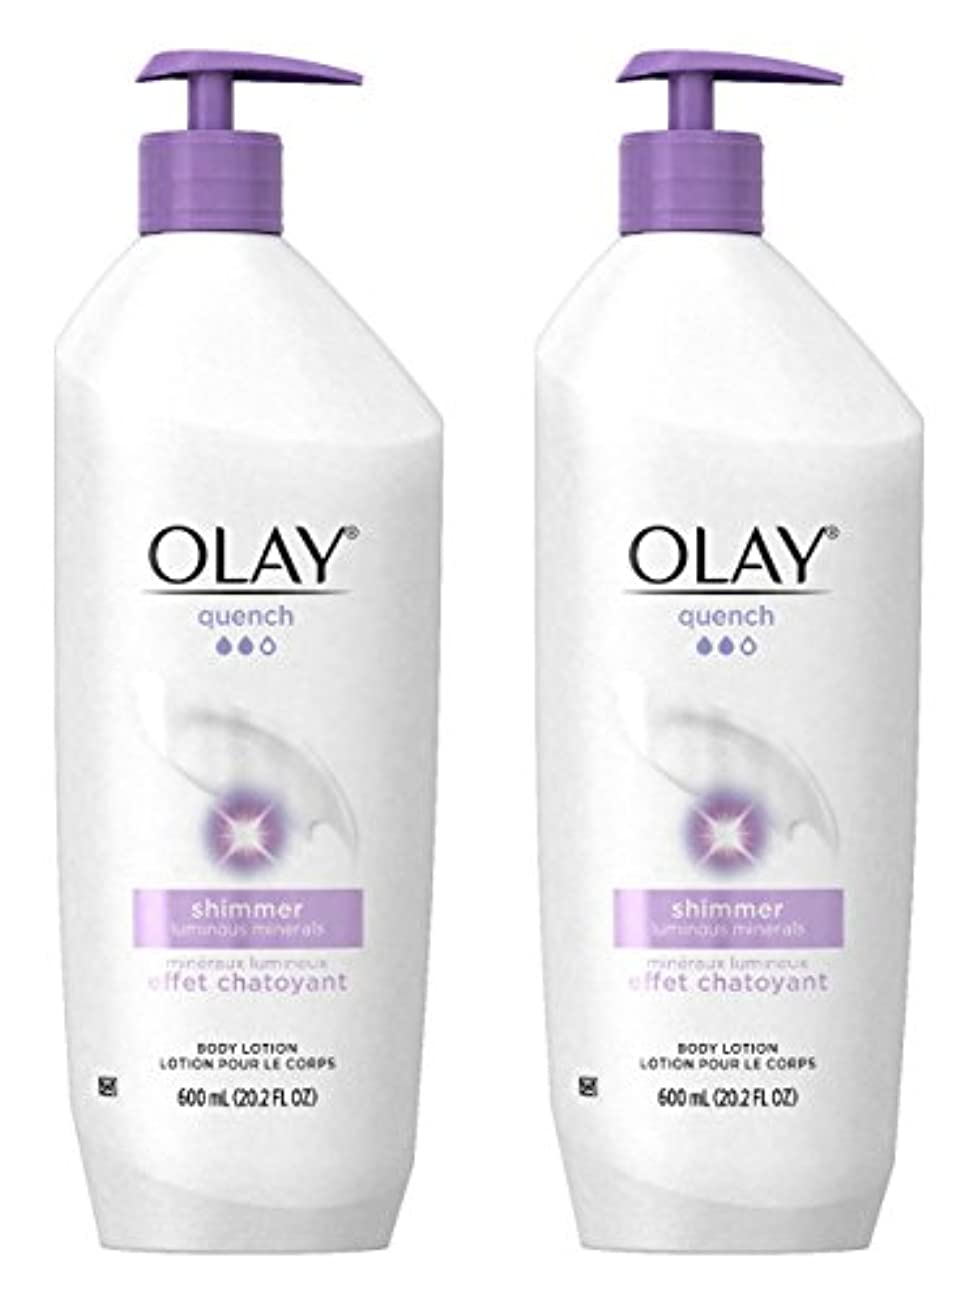 Olay Quench Daily Lotion Plus Shimmer Body Lotion 20.2 Fl Oz (Pack of 2) by Olay [並行輸入品]